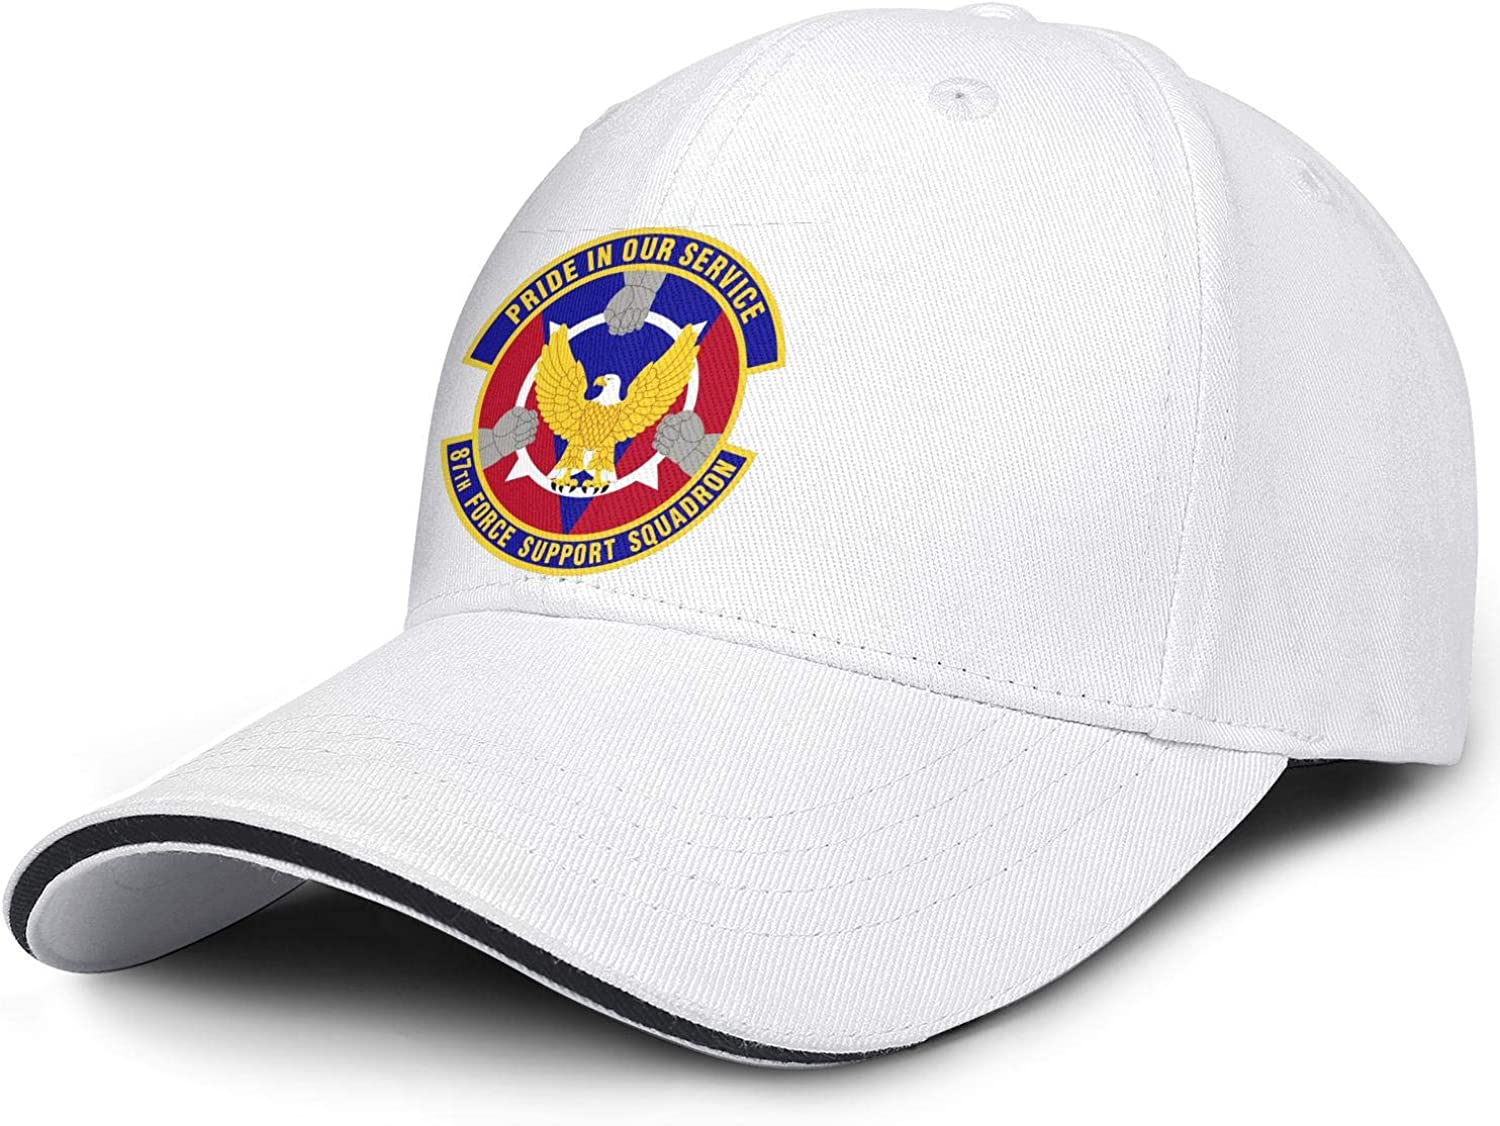 Unisex 8th-Force-Support-Sq-Emblem- Hats Ball Cap Cheap sale Beauty products